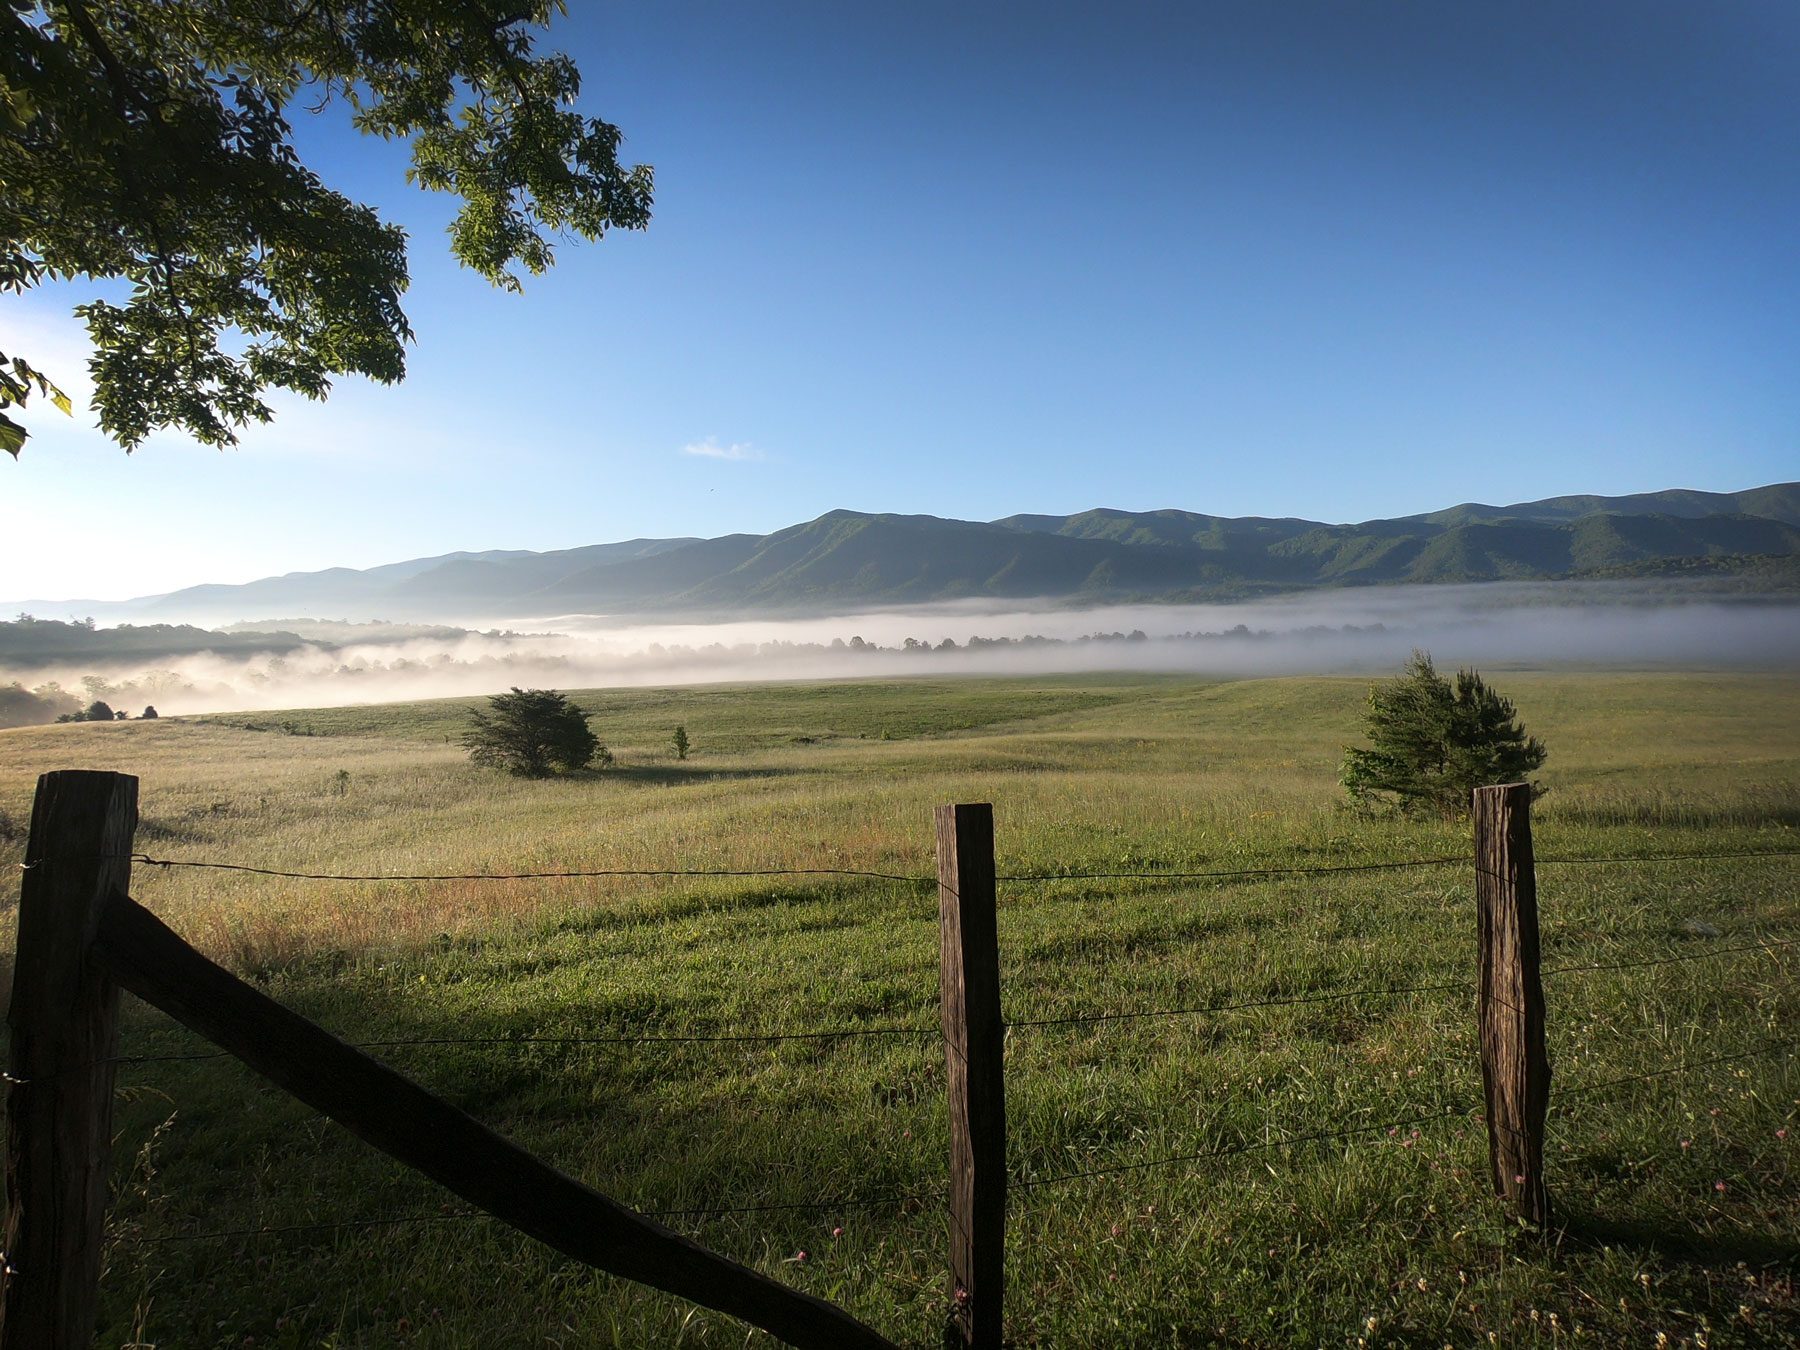 Cades Cove Loop Drive with mist on field in Great Smoky Mountains National Park, Tennessee